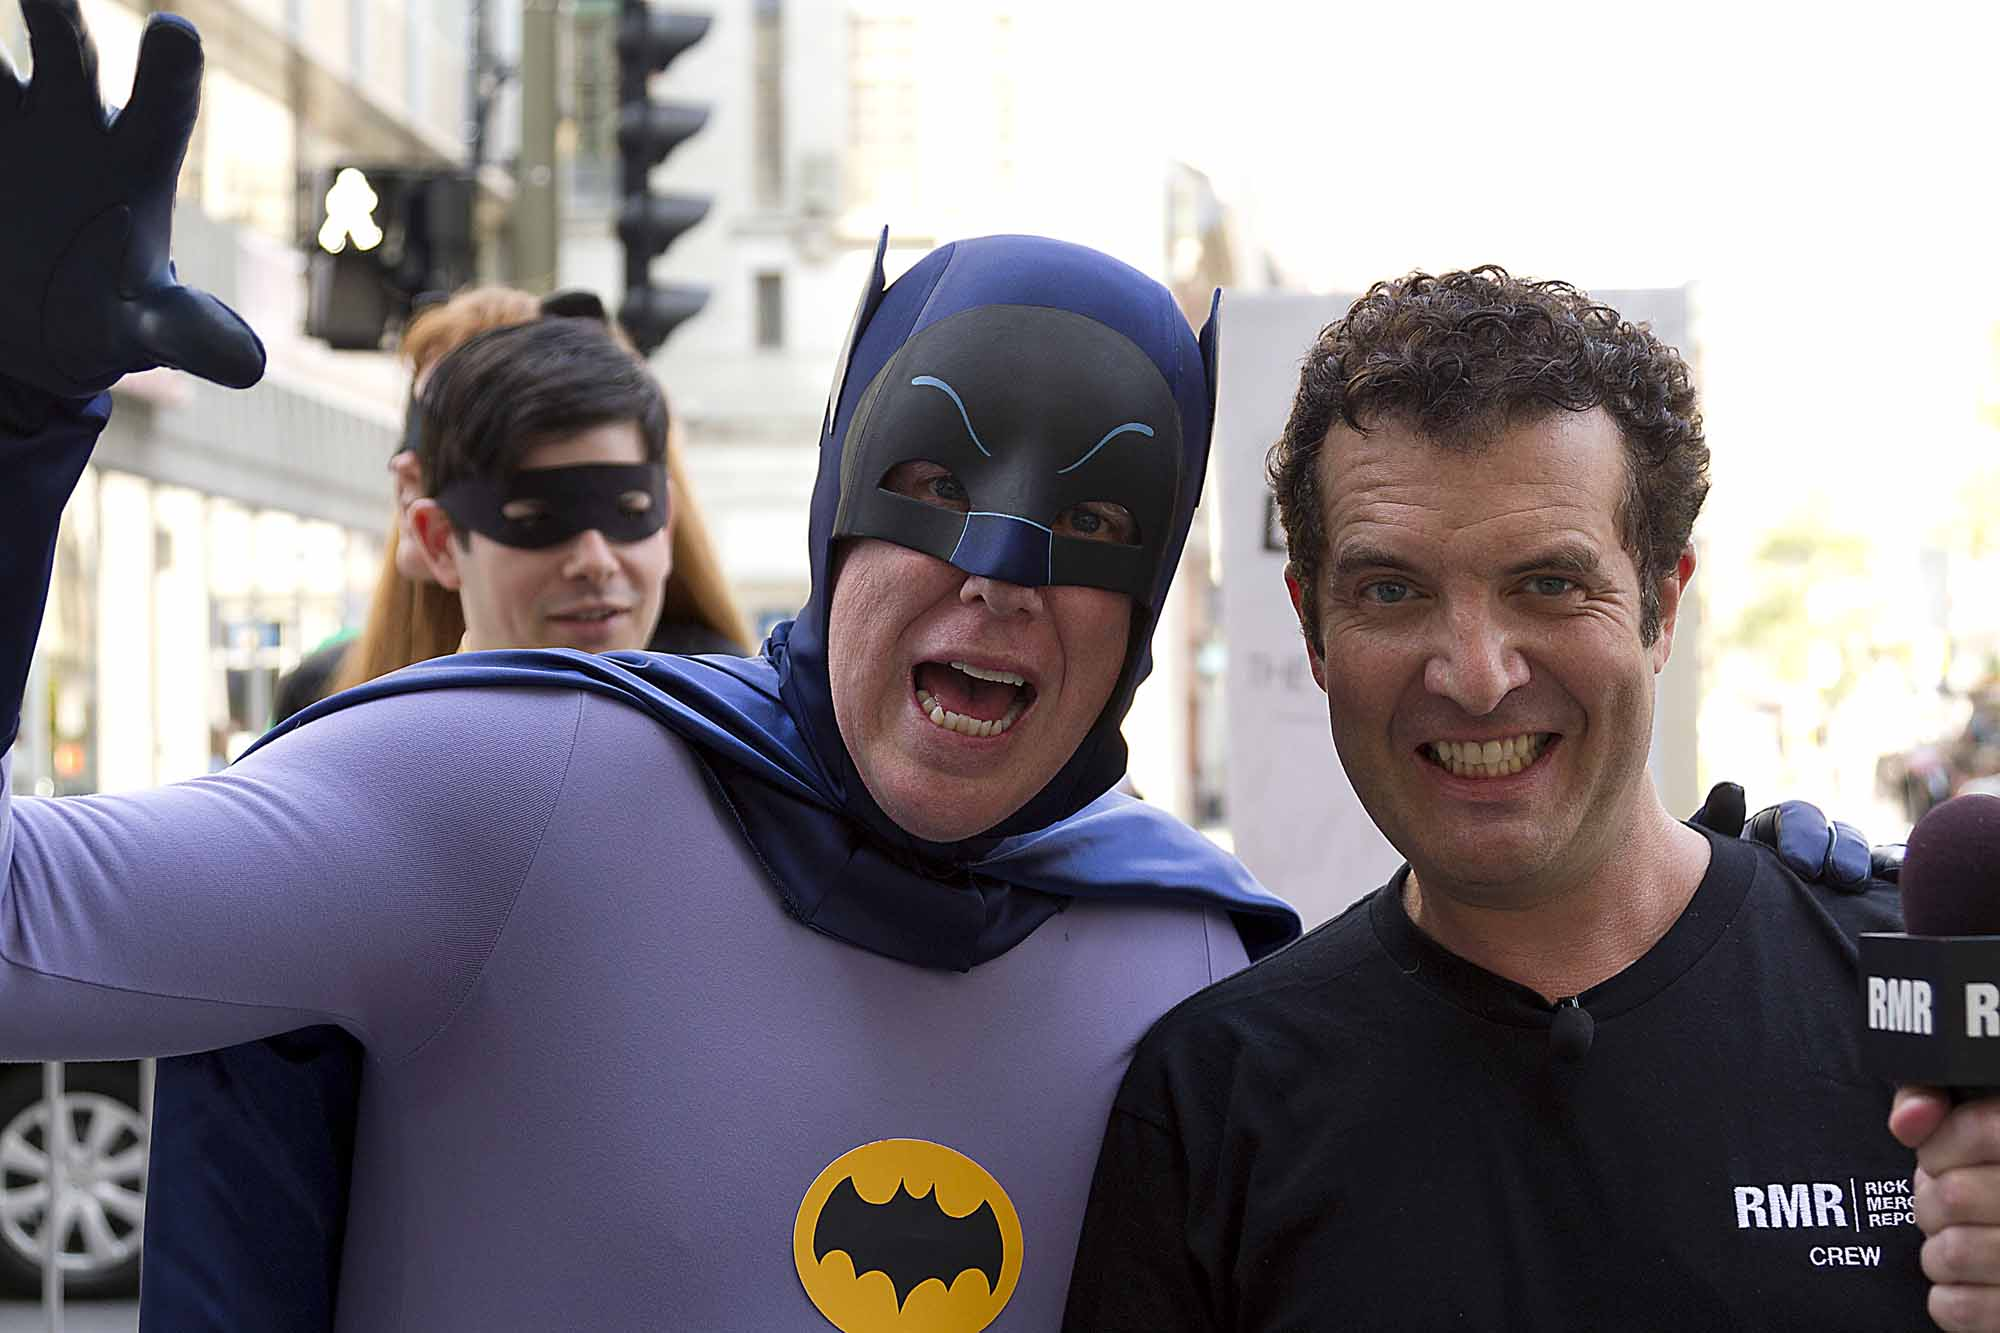 Rick Mercer | The Canadian Encyclopedia